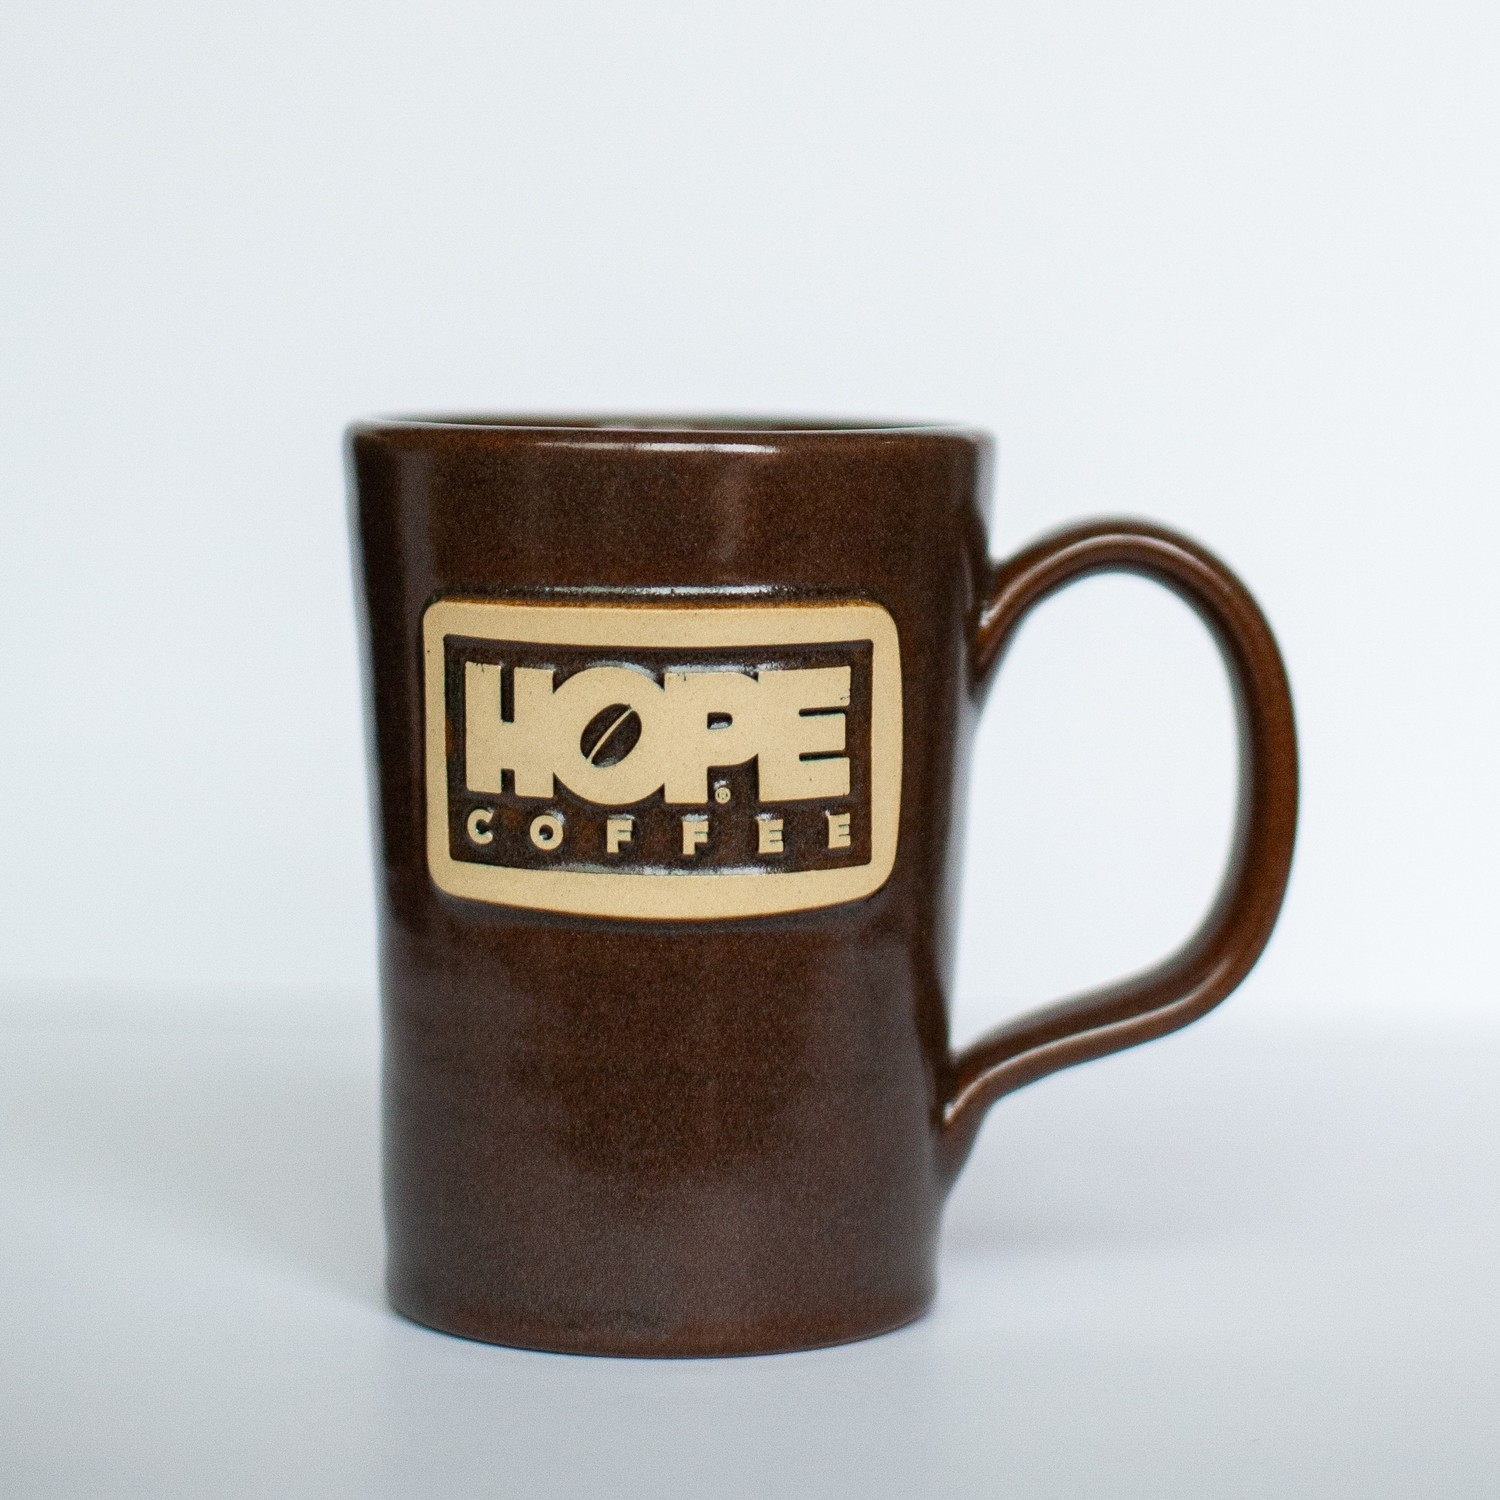 HOPE Coffee 12 oz Handcrafted Stoneware Mug - Abby Style